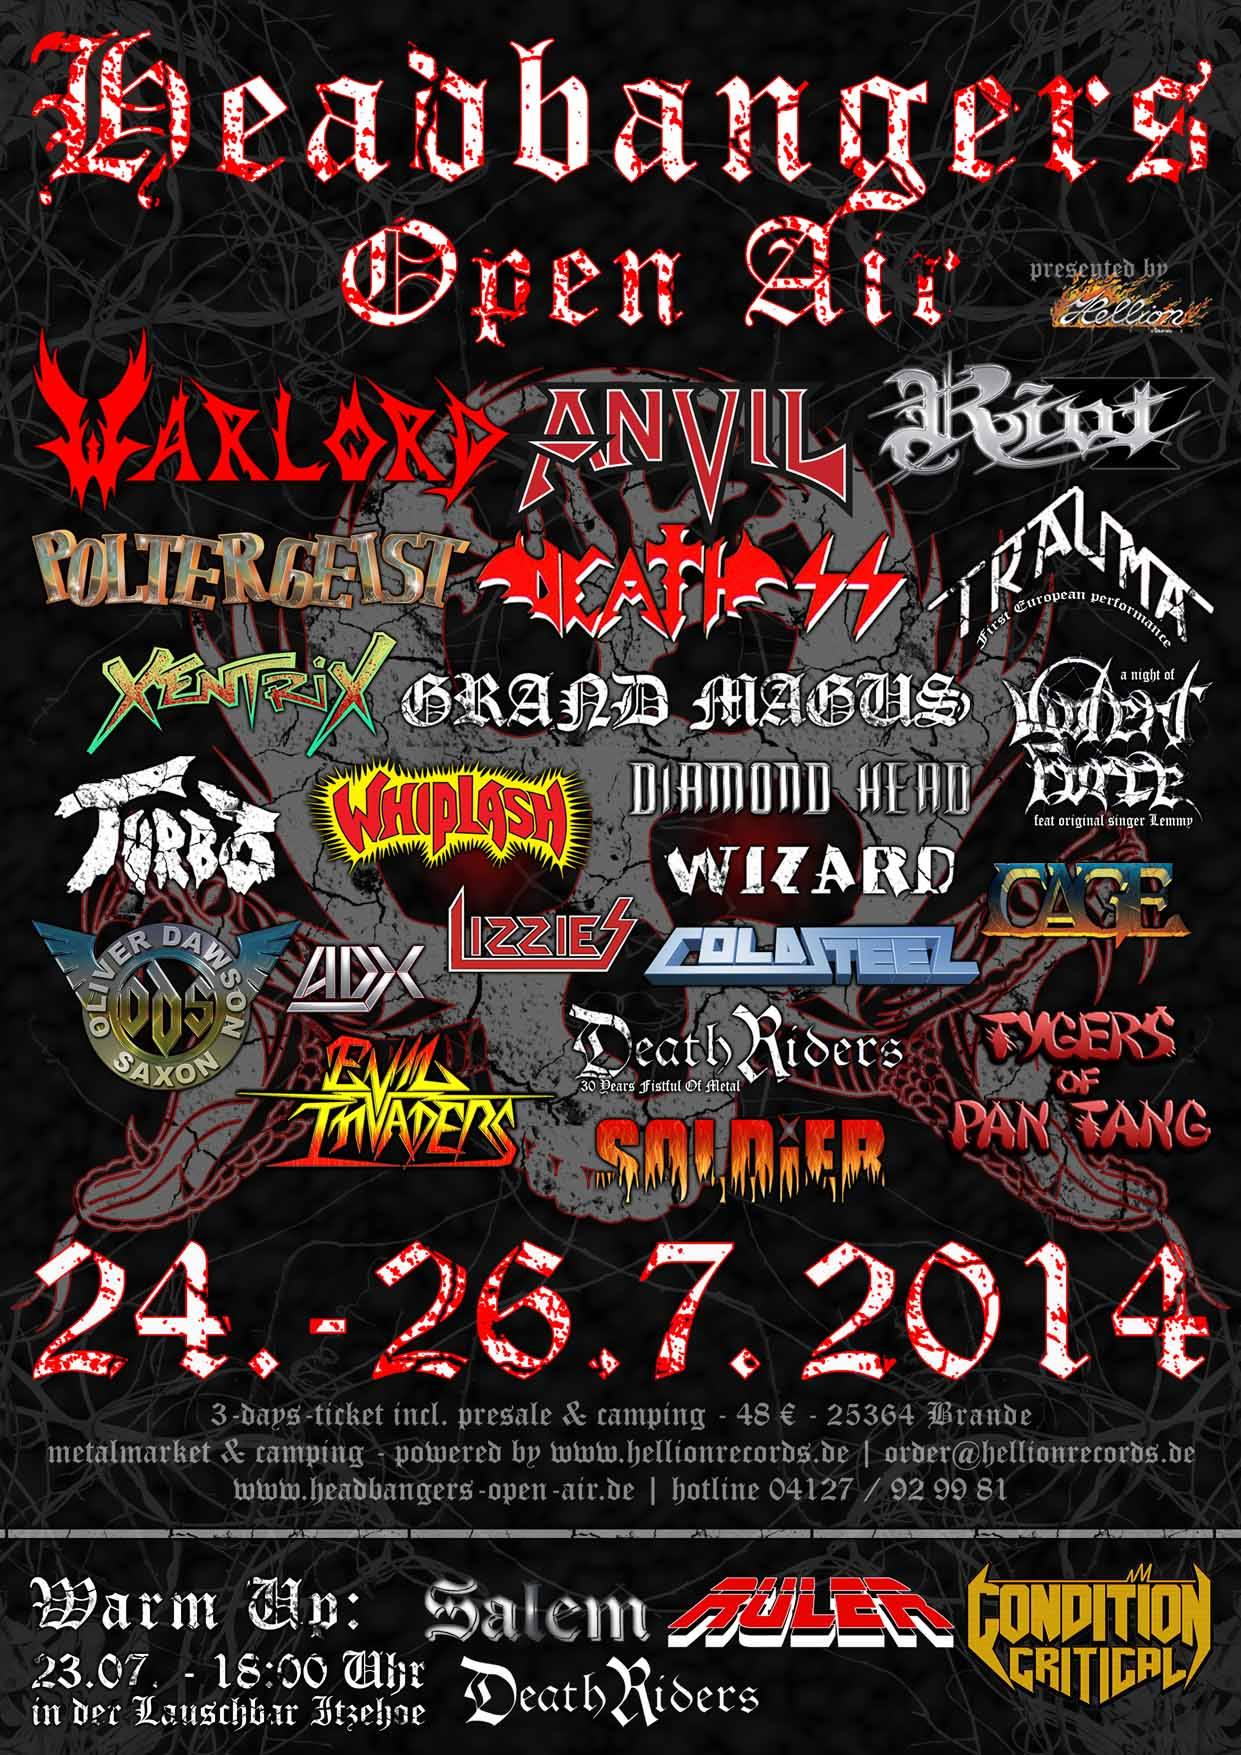 DeathRiders Fistful Of Metal Alive 30 Years Headbanger's Open Air, Germany 7/24/2014